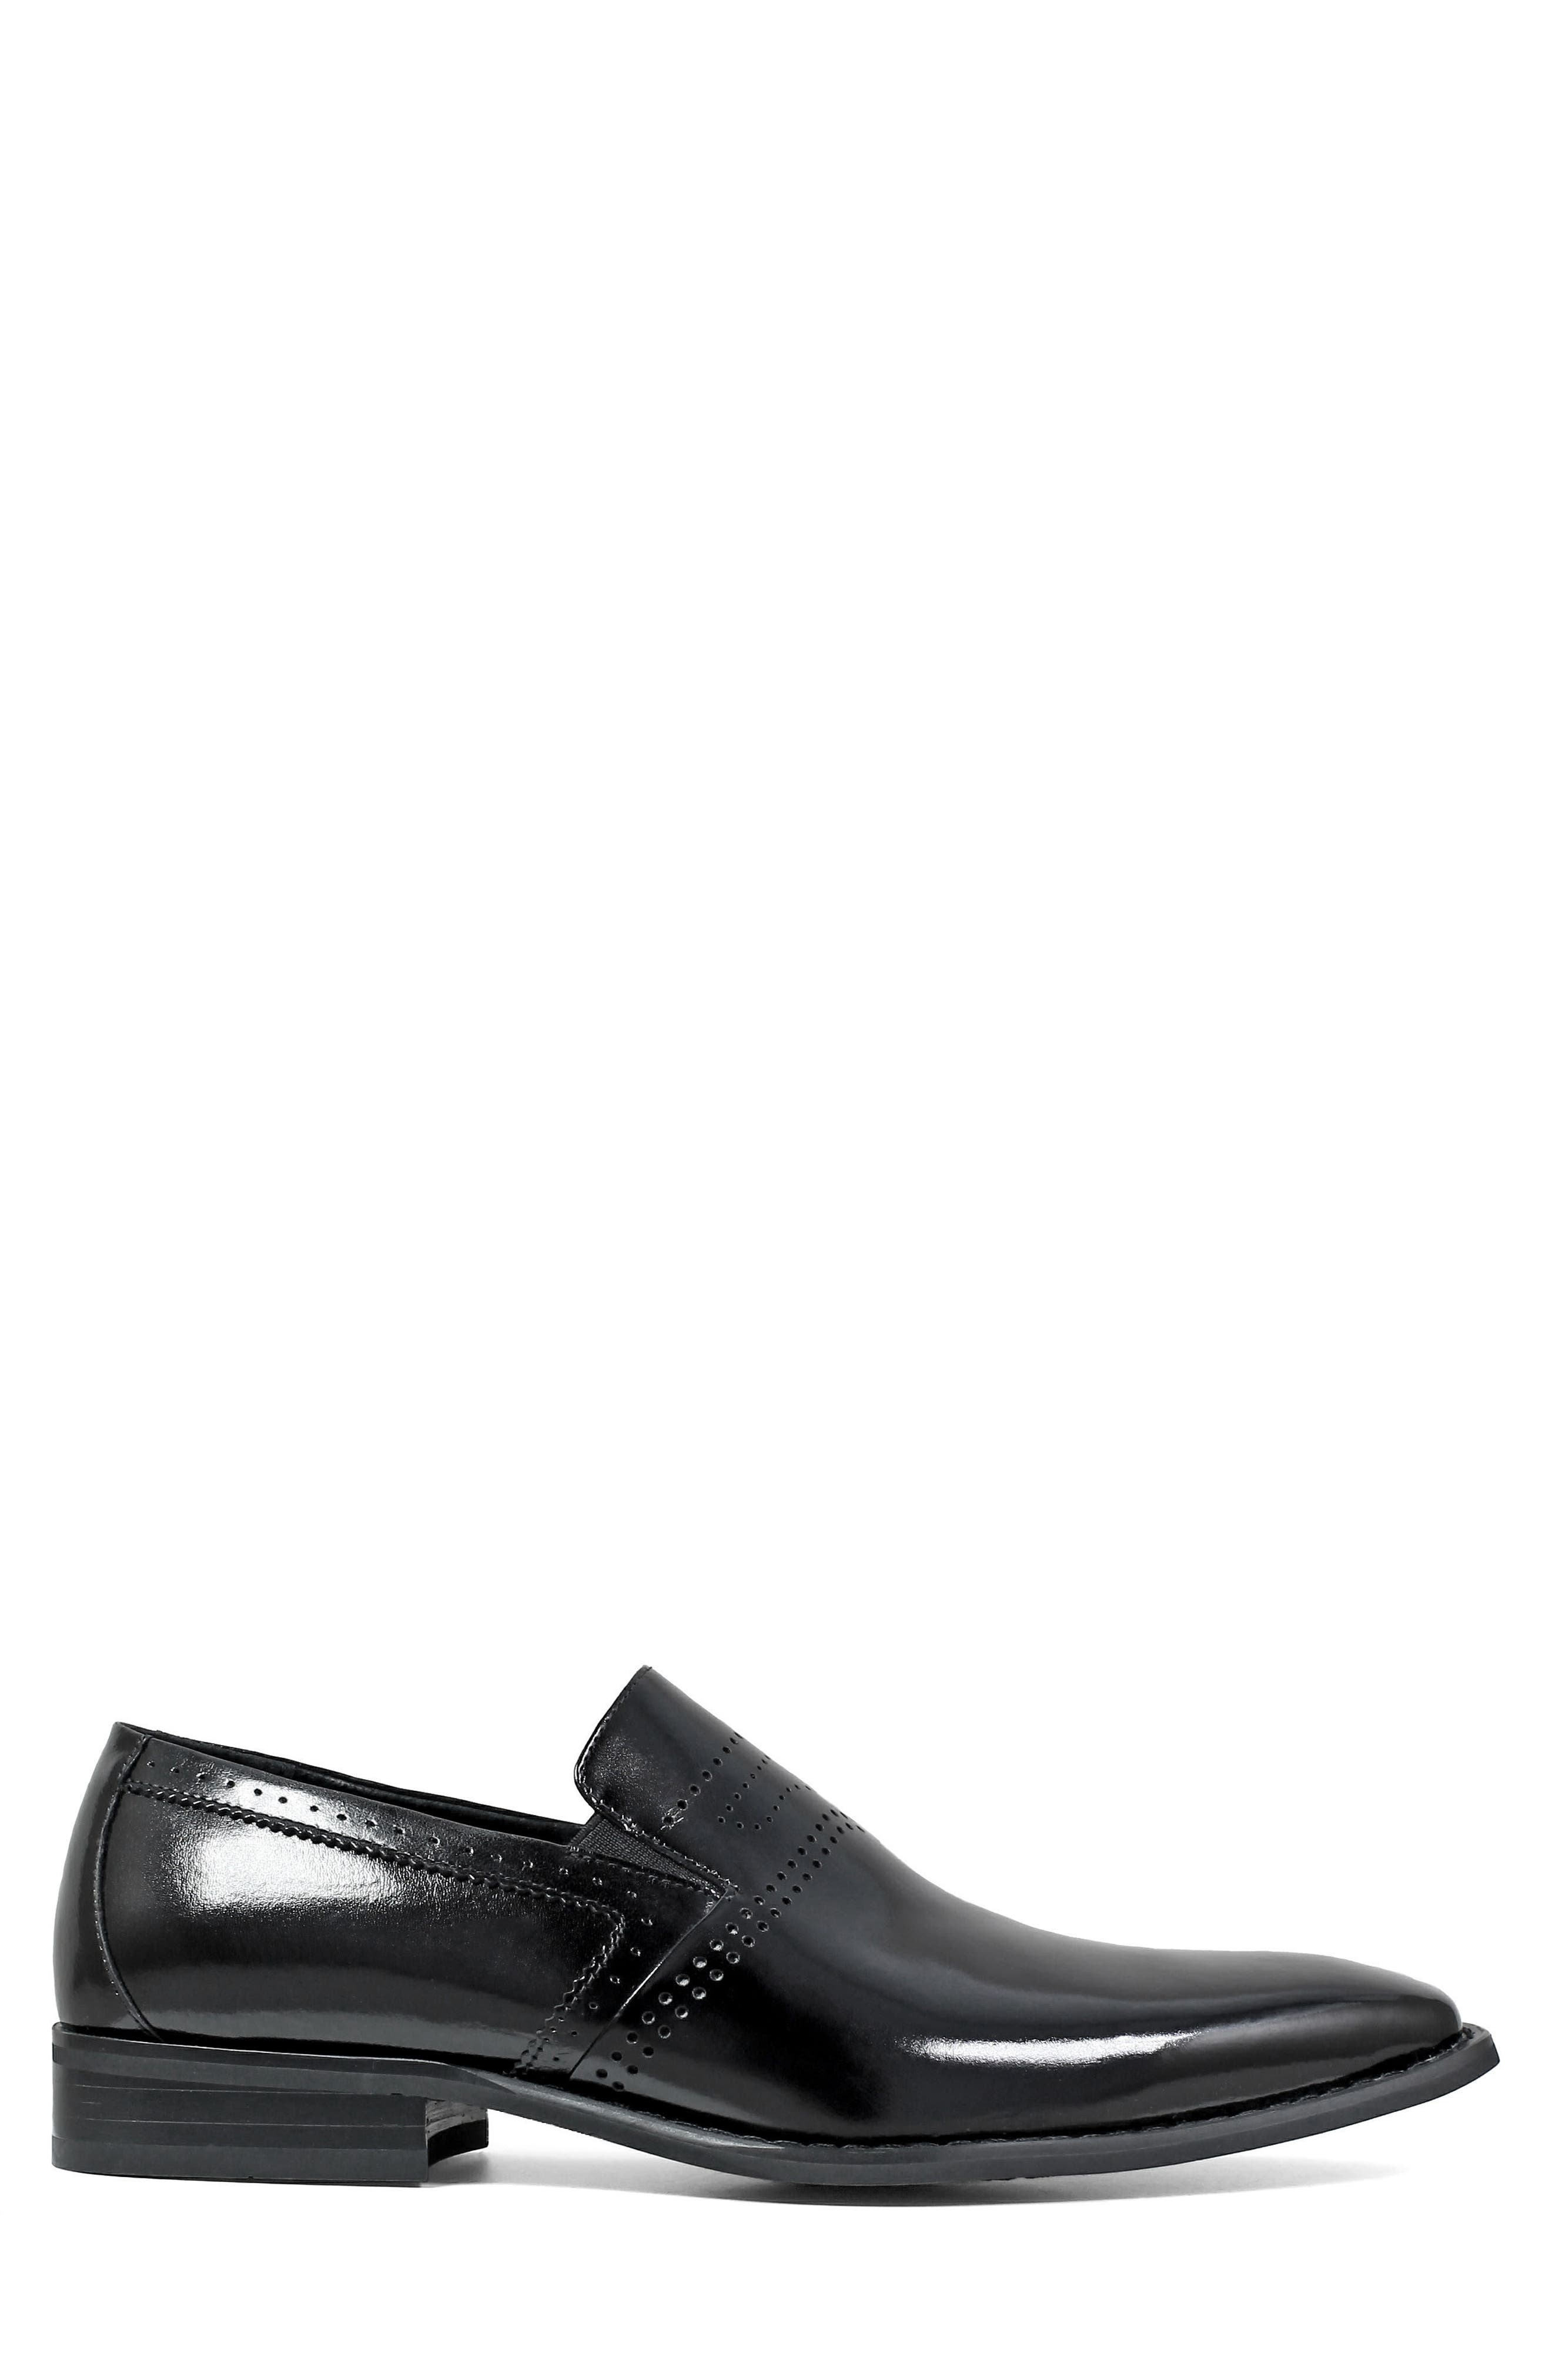 Alternate Image 3  - Stacy Adams Saunders Perforated Venetian Loafer (Men)